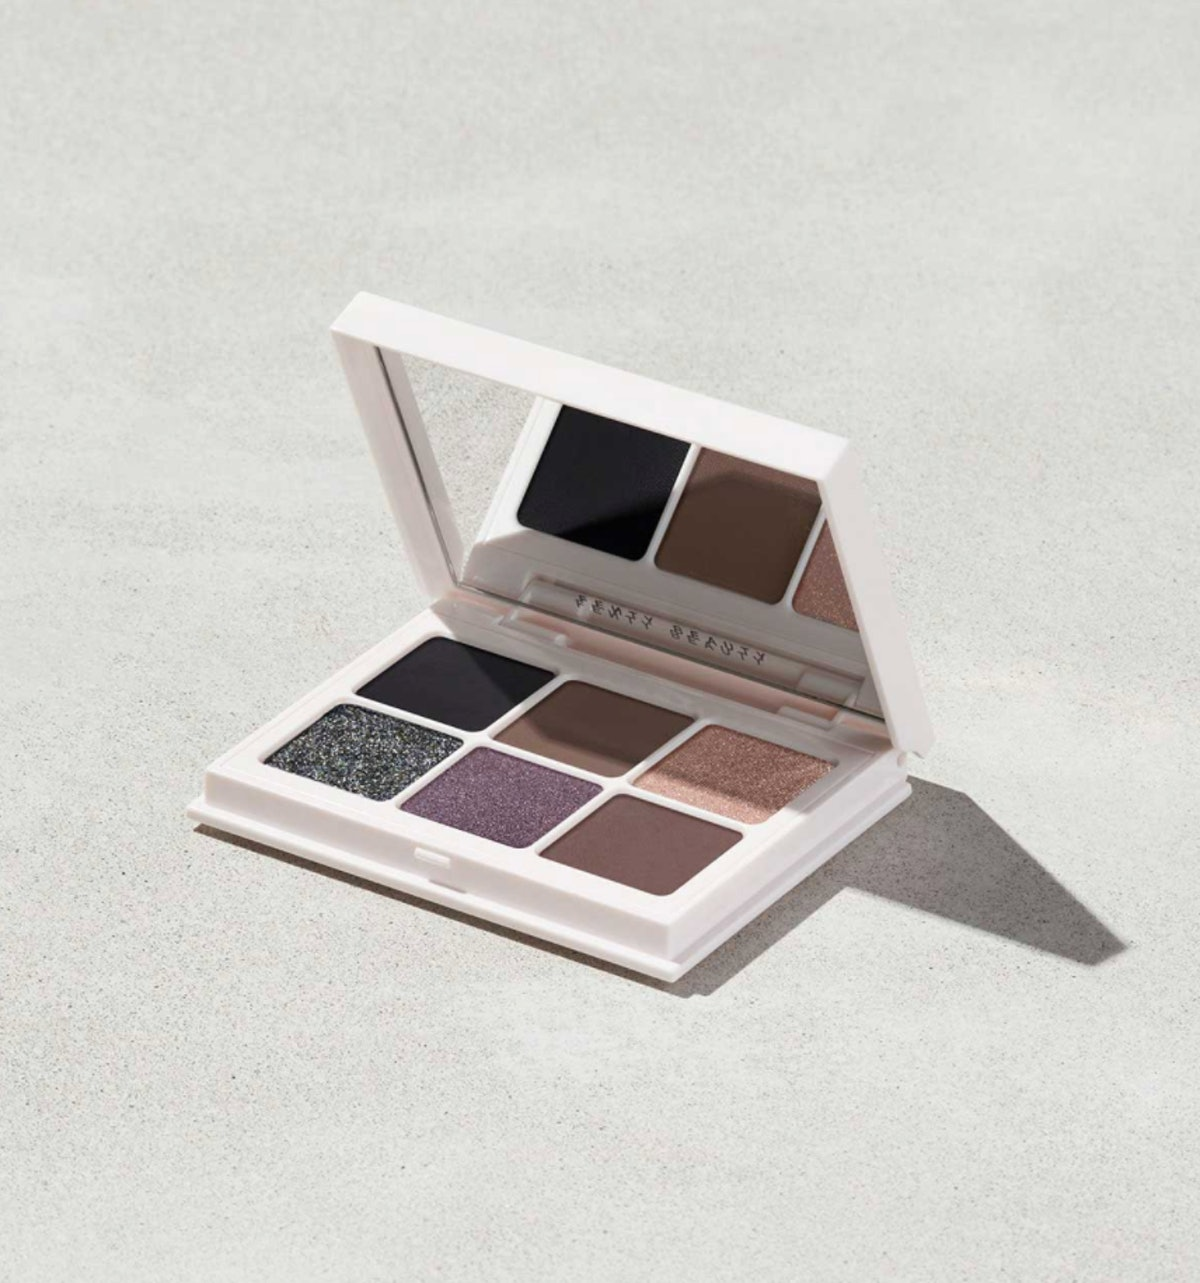 Snap Shadows Mix & Match Eyeshadow Palette in Smoky